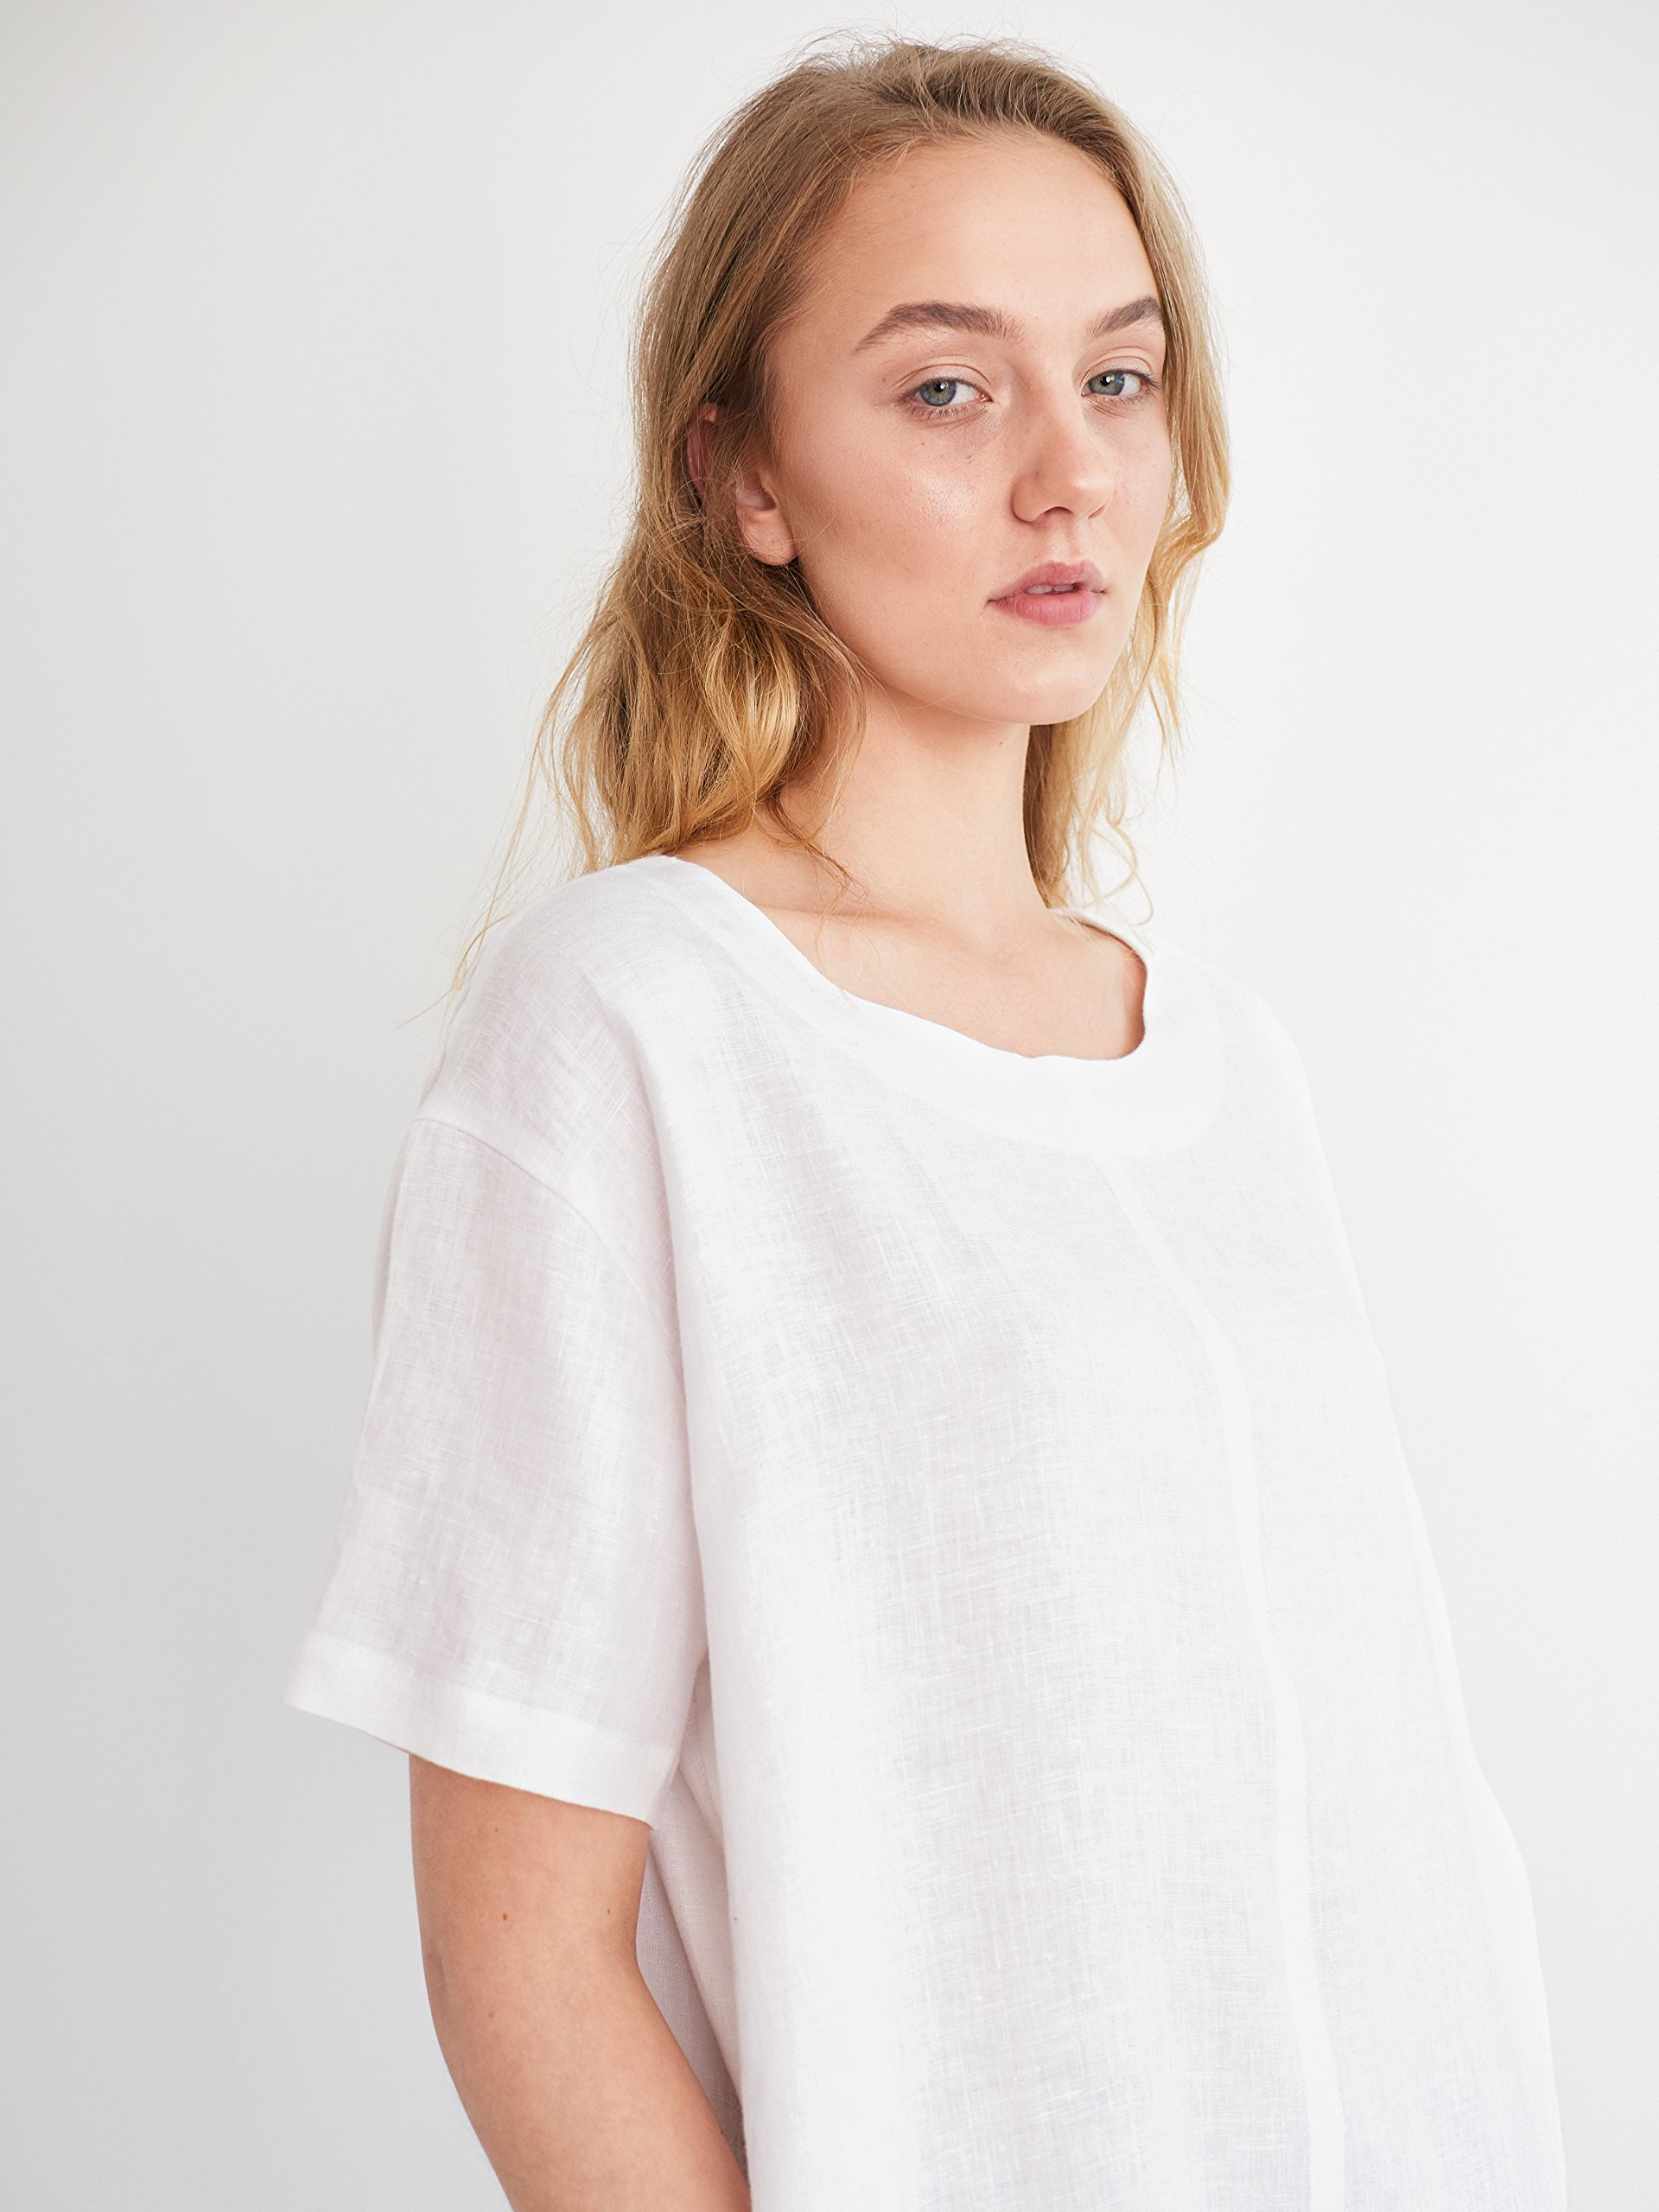 VENICE Linen Tunic Dress in White Short Sleeve Boat Neck Summer Relaxed Loose Fit Ladies Women Pockets